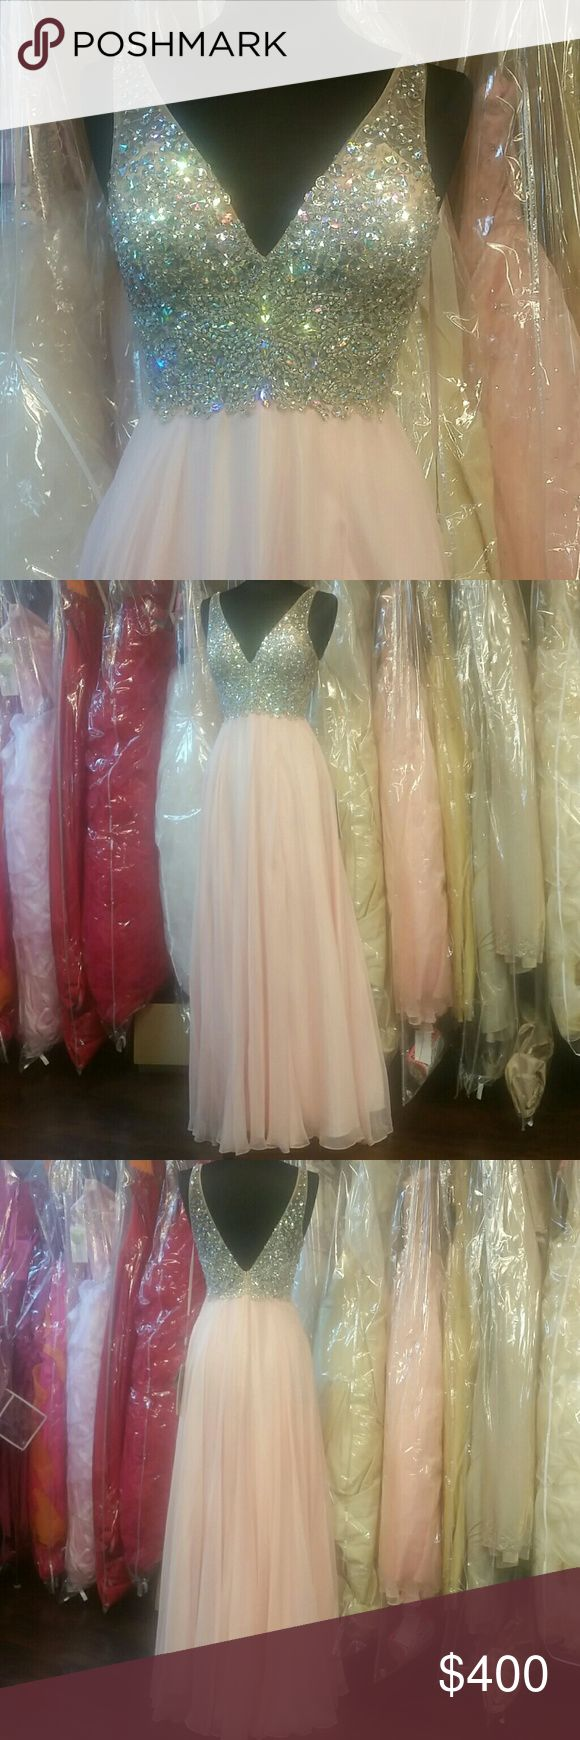 Bejeweled Blush Gown NWT, light pink/blush (color a but darker in real life), sheer bodice with straps and cups, heavily beaded with AB and silver crystals, vneck frong and back, long flowy chiffon skirt w/leg slit, zipper back. Great for prom, homecoming, wedding, pageants, parties, or any formal event. Designer: Let's Fashion, size: Medium, color: blush pink. Sherri Hill for exposure. Sherri Hill Dresses Prom